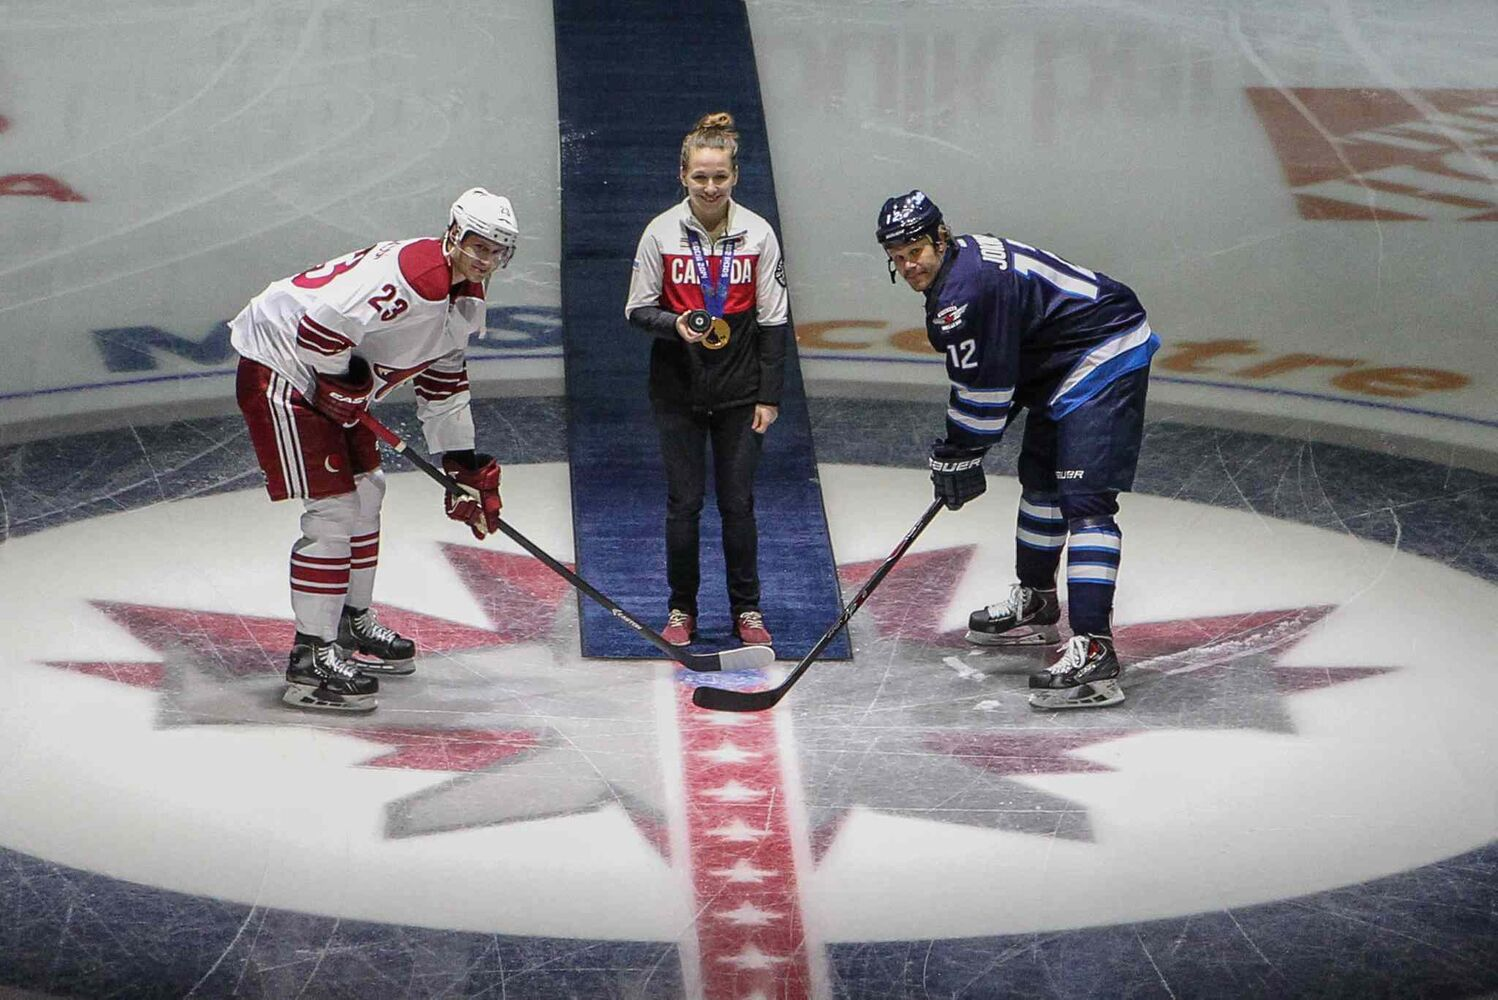 Olympian and gold-medal hockey player Jocelyne Larocque drops the puck for Winnipeg Jets' Olli Jokinen (12) and Phoenix Coyotes' Oliver Ekman-Larsson (23) before the Winnipeg Jets game against the Phoenix Coyotes at MTS Centre Thursday night.